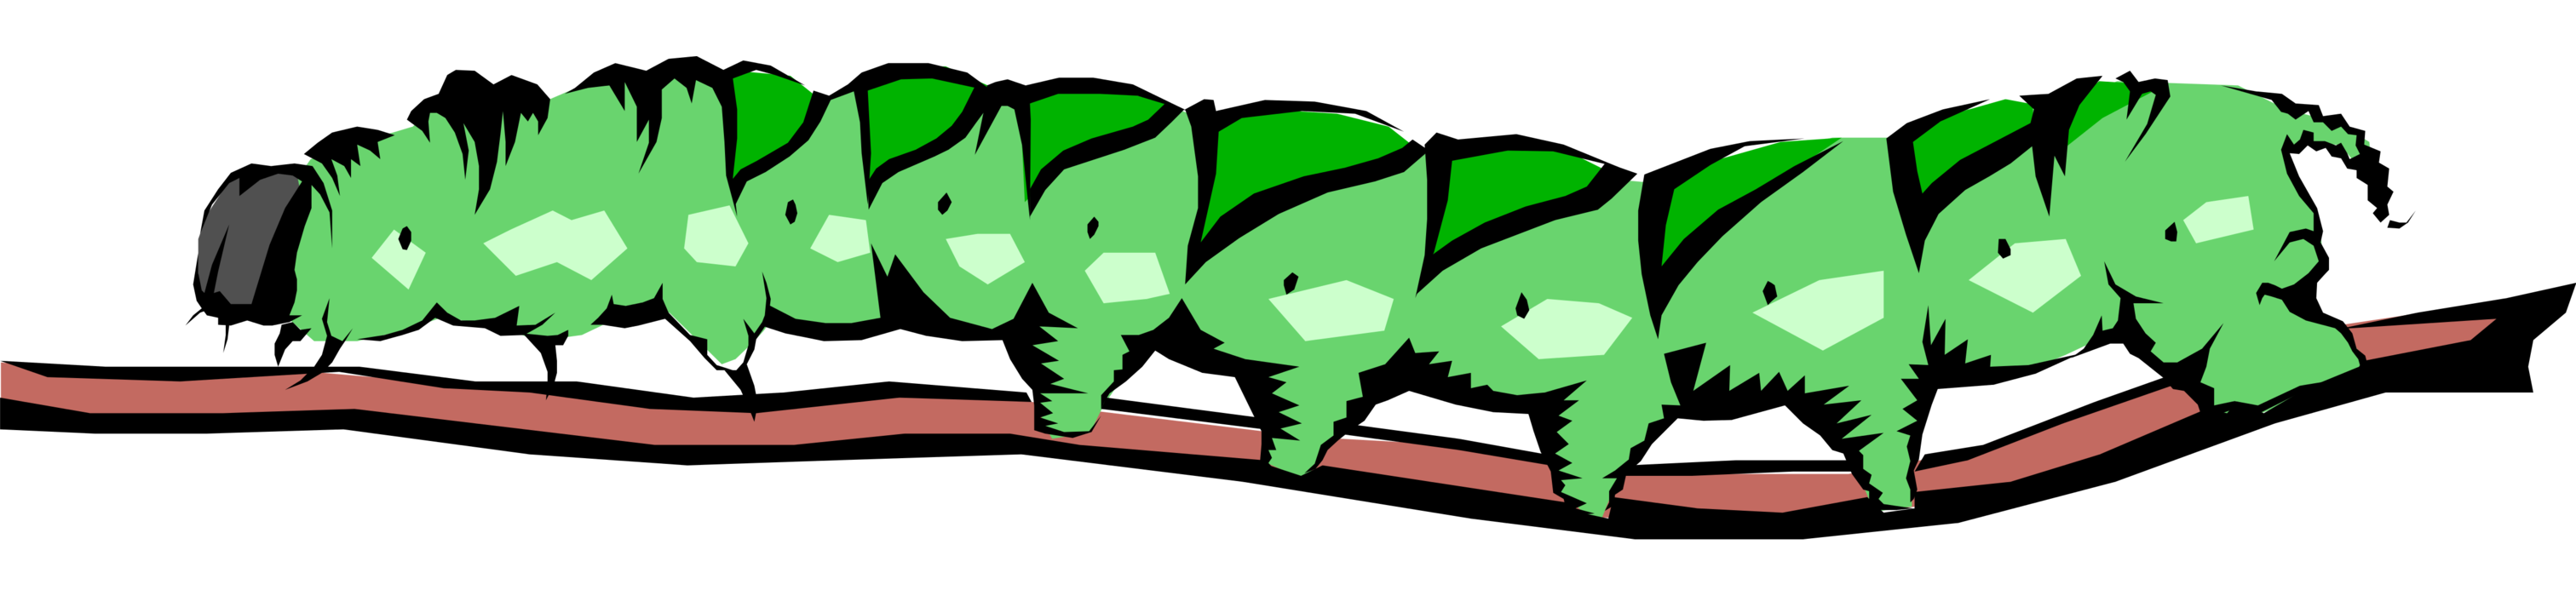 Vector Illustration of Green Caterpillar Insect Crawls Along Branch